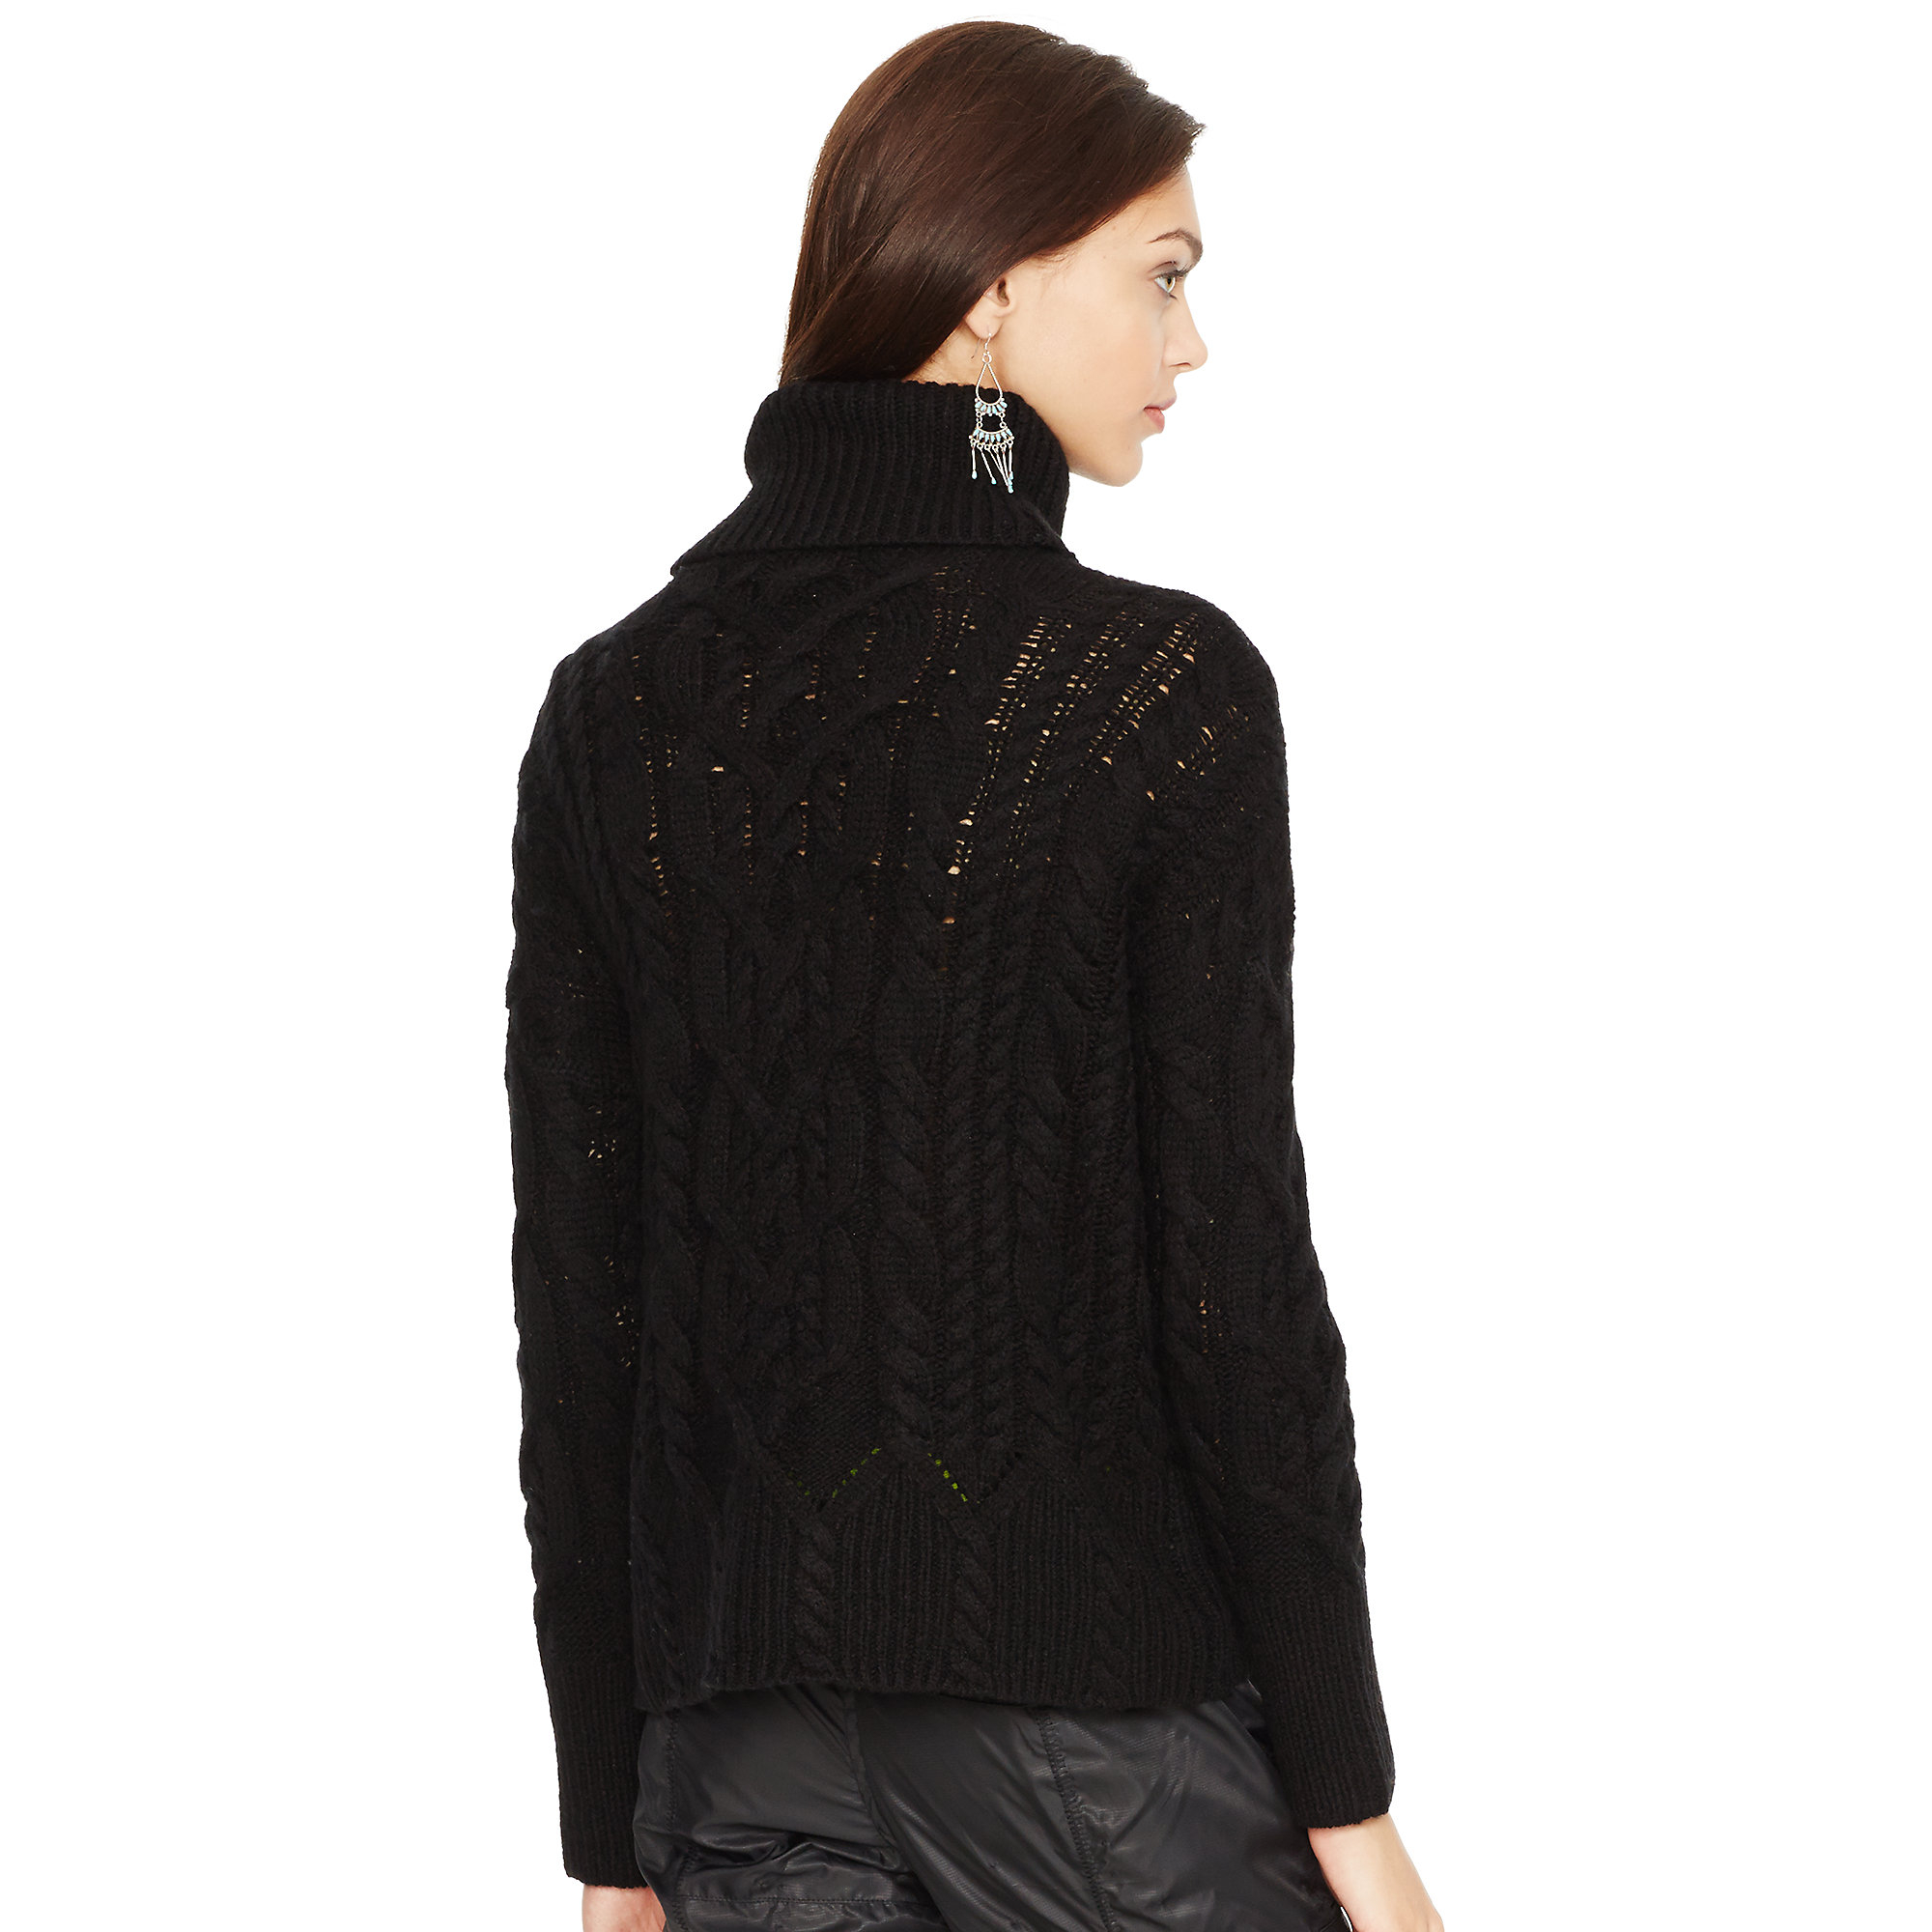 Lyst - Polo ralph lauren Aran-Knit Turtleneck Sweater in Black